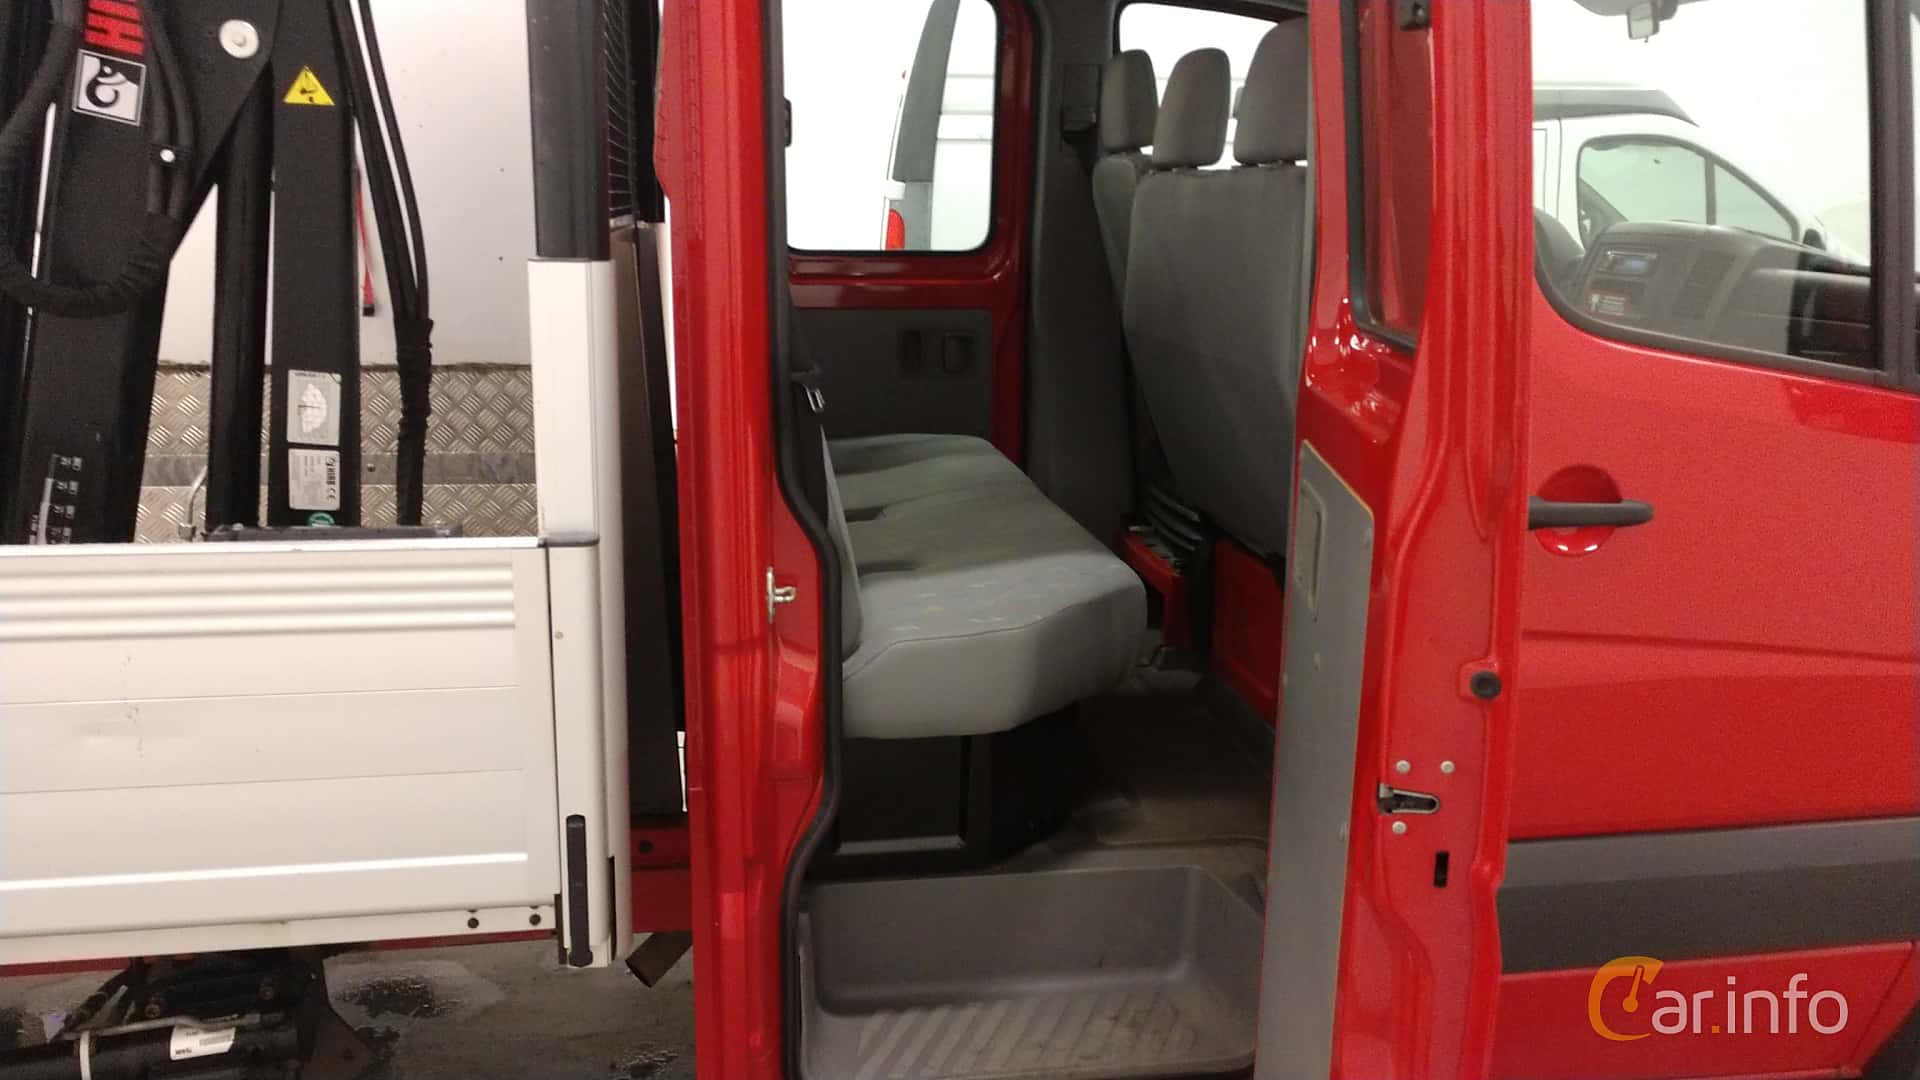 Volkswagen Crafter Chassi Double Cab 2.5 TDI Manual, 109hp, 2009